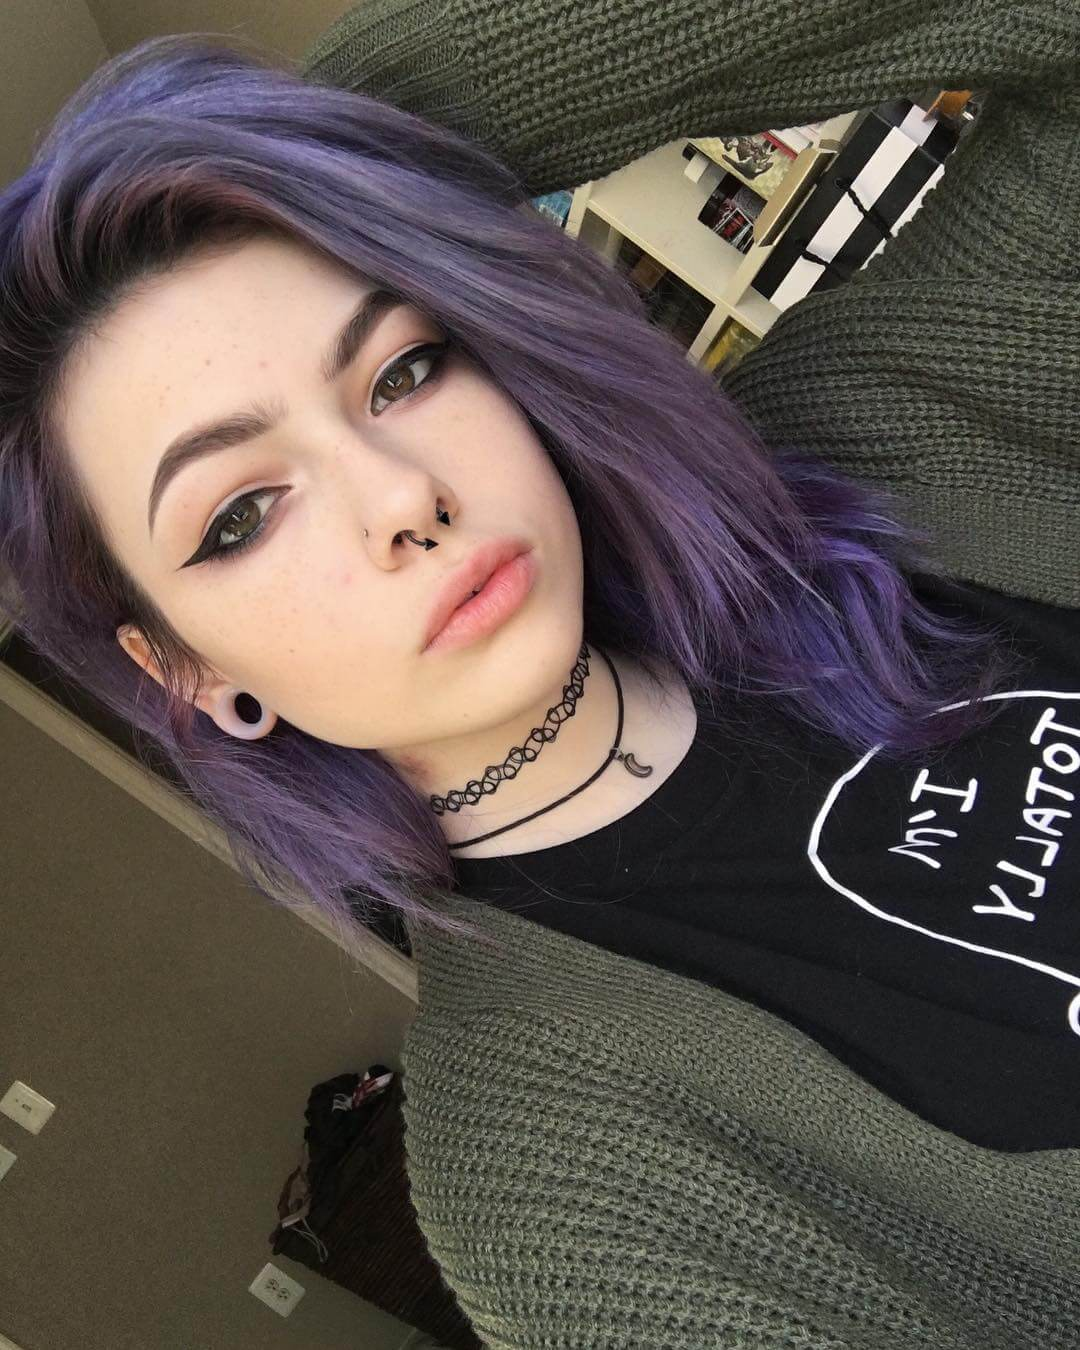 30 More Edgy Hair Color Ideas Worth Trying Page 24 Of 30